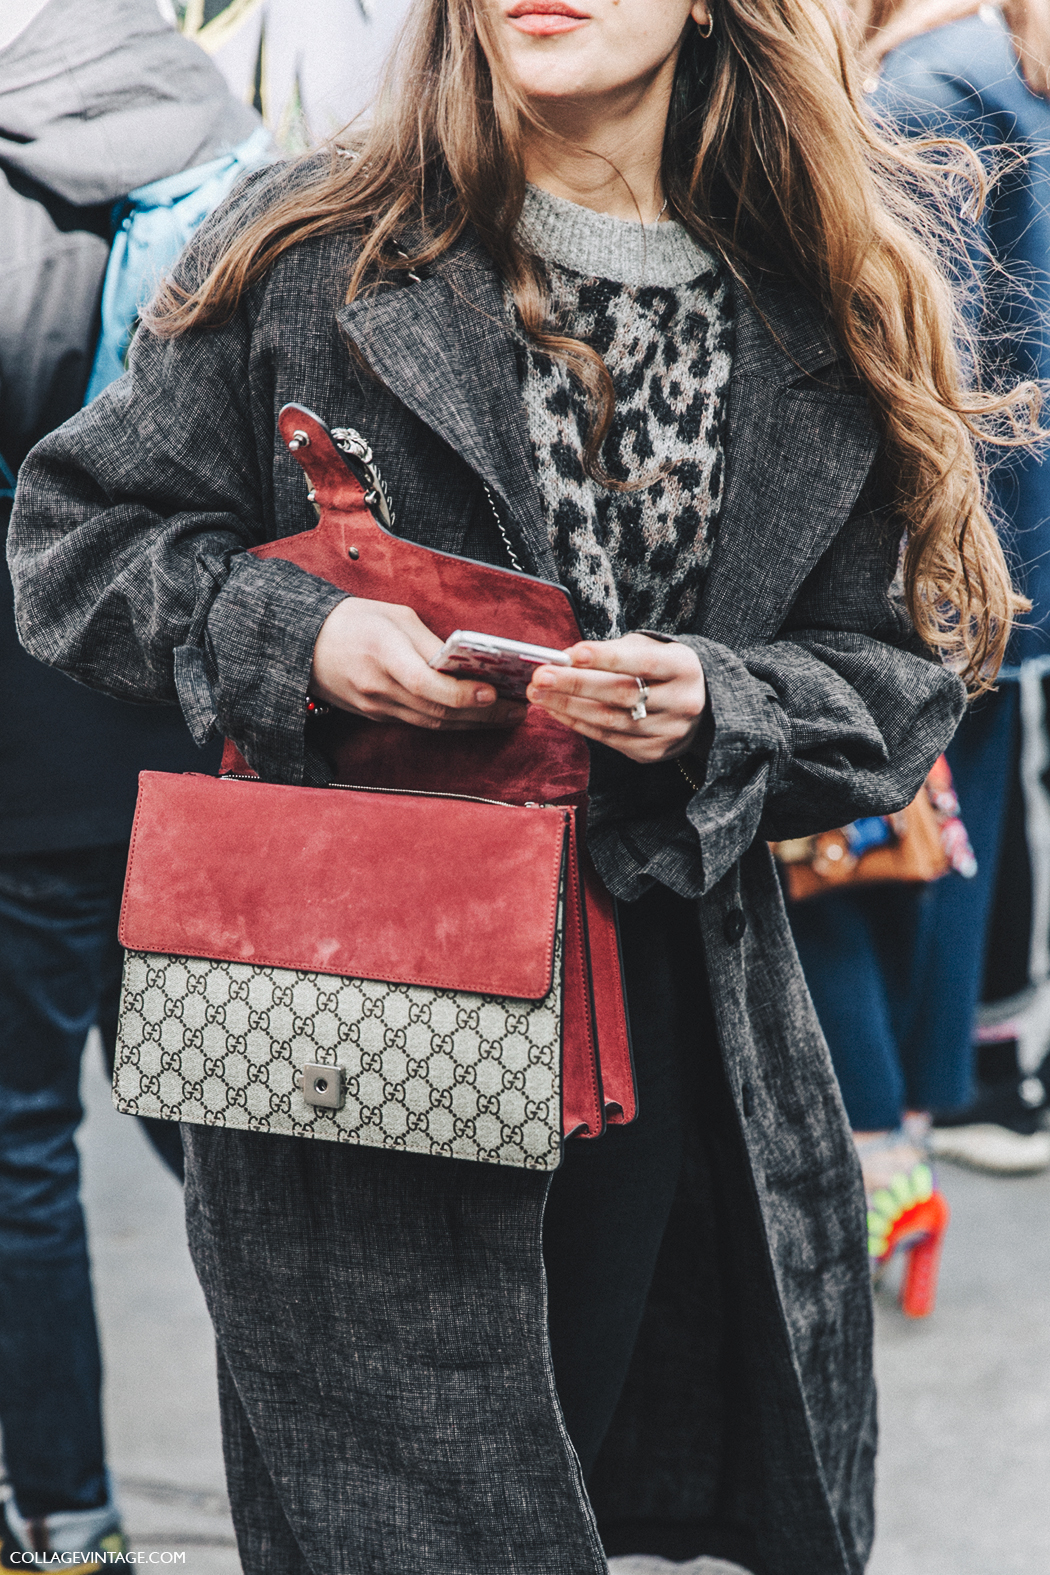 PFW-Paris_Fashion_Week_Fall_2016-Street_Style-Collage_Vintage-Gucci-